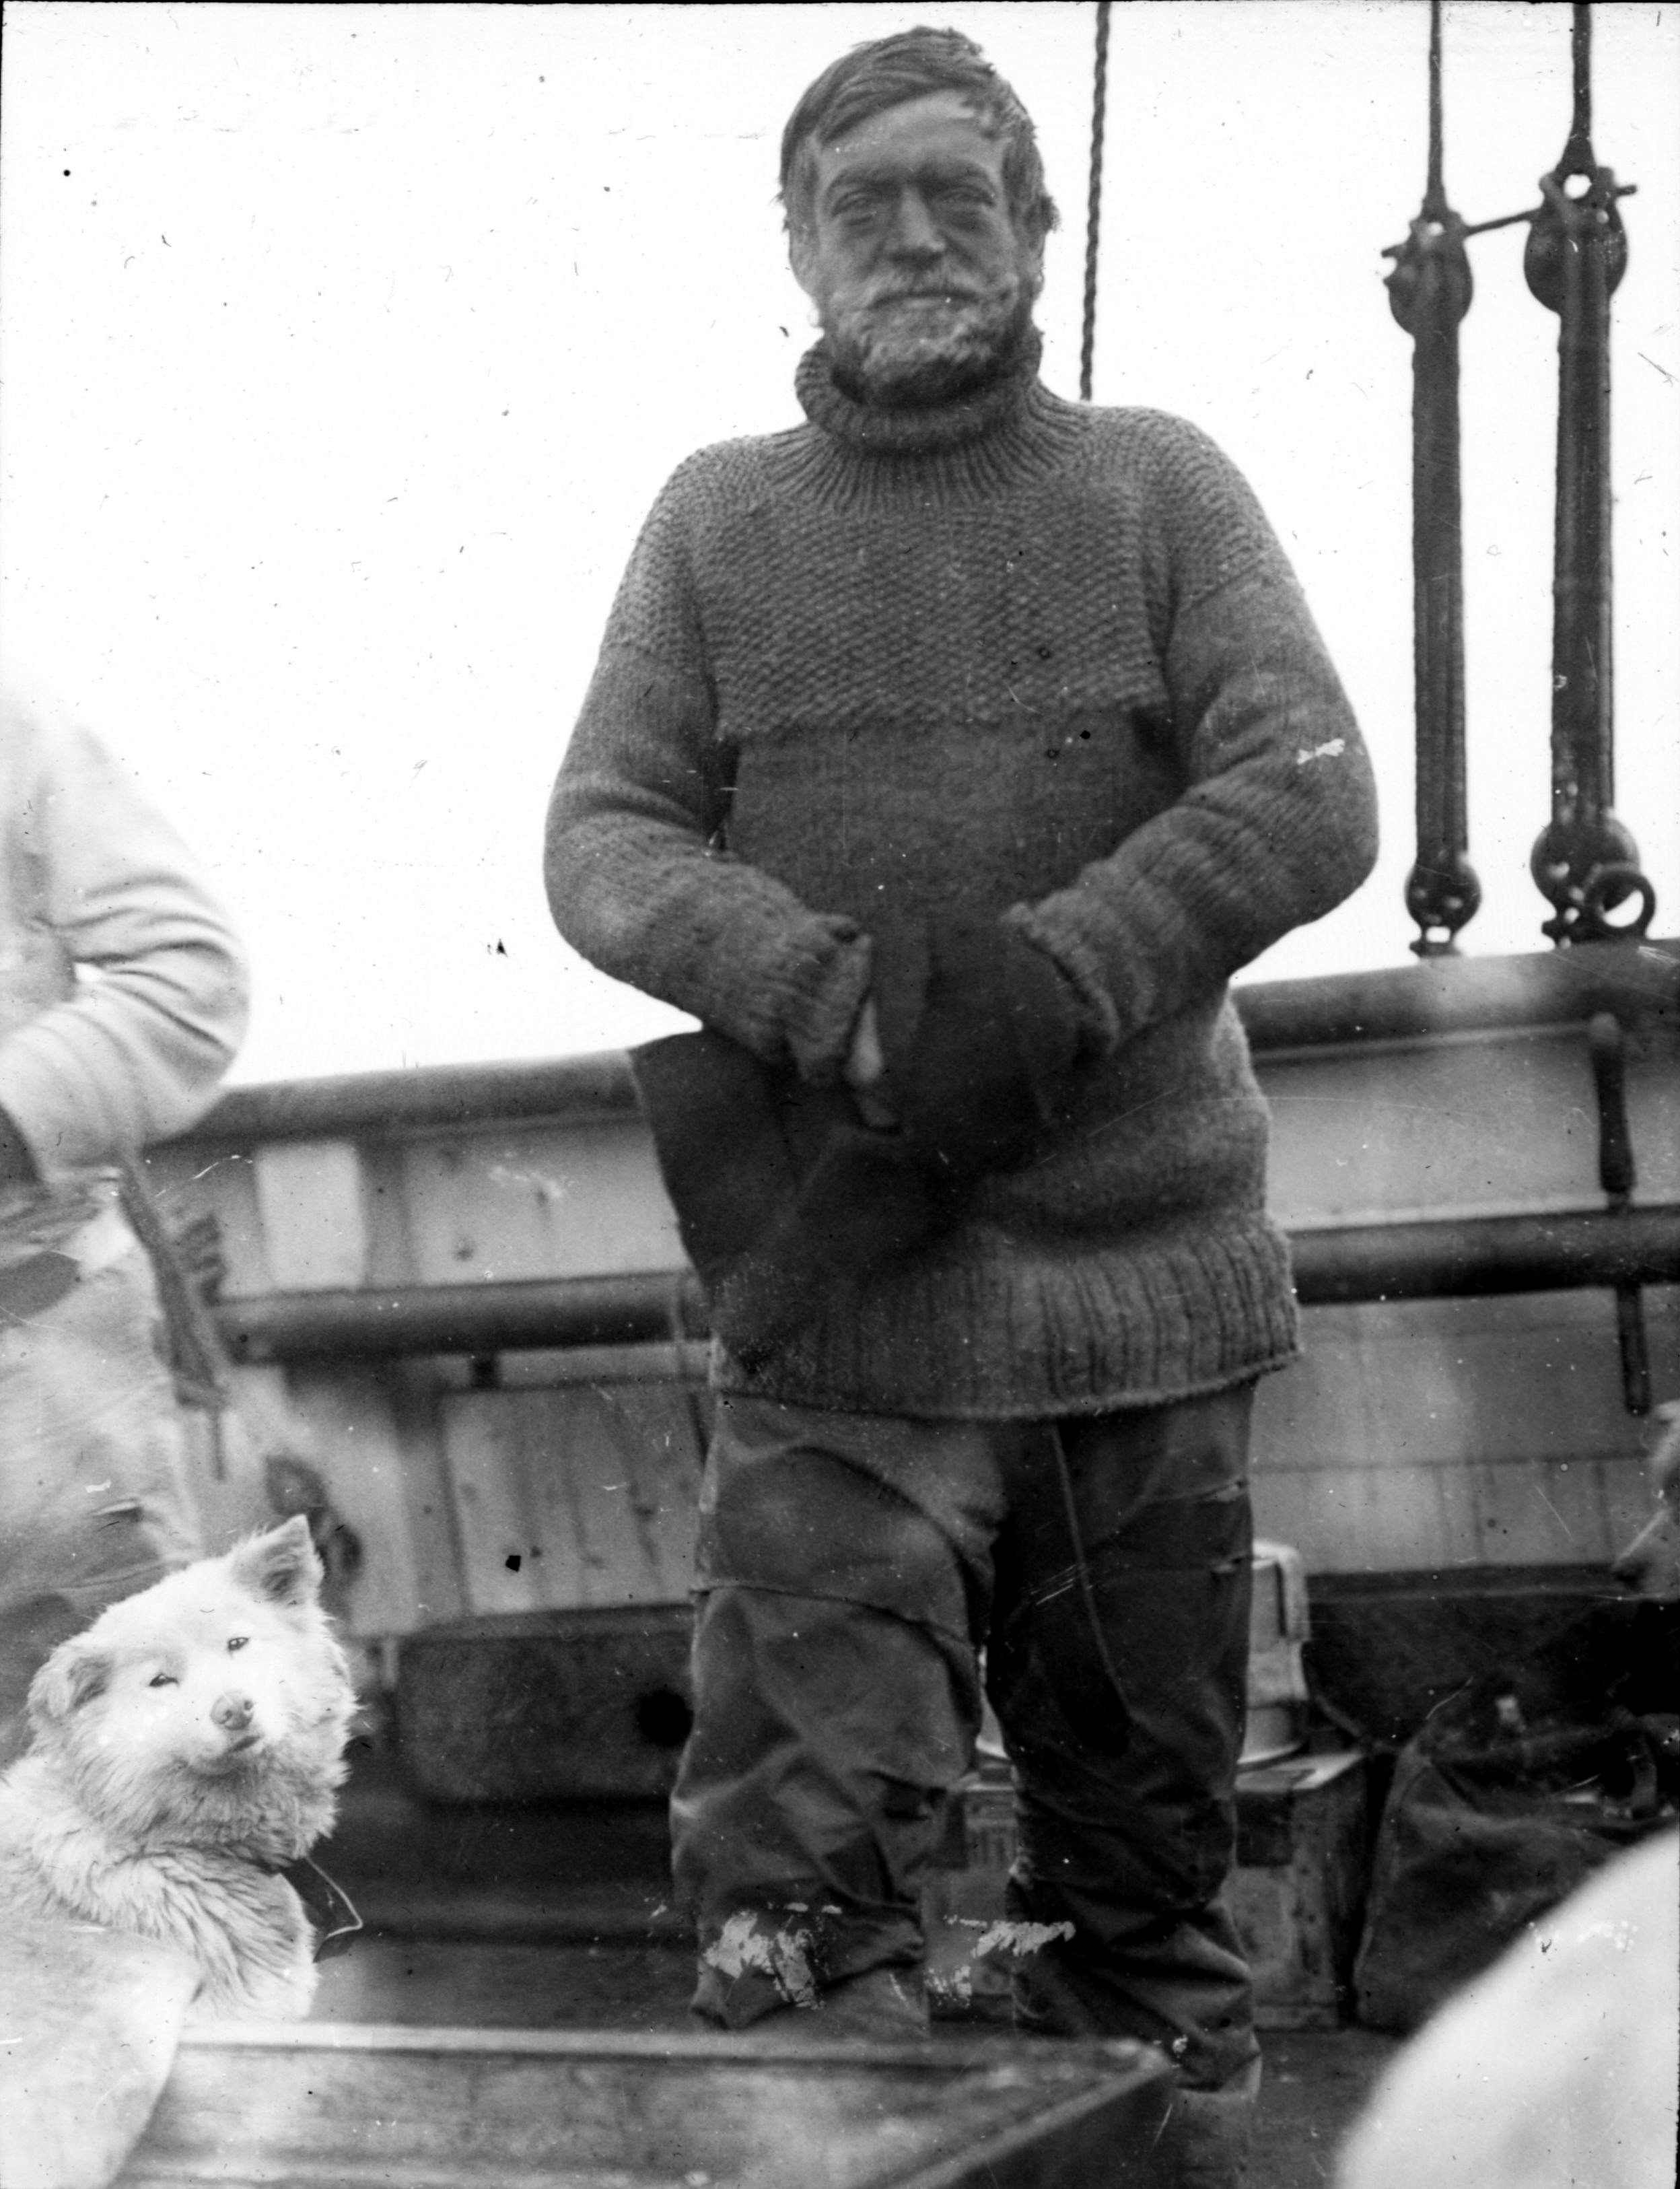 """Ernest Shackleton (1874-1922), British Imperial Antarctic Expedition """"Nimrod - Expedition"""", 1907 -1909  Public Domain, from """"The Heart of the Antarctic"""", Volume I, by E. H. Shackleton, 1909. P. 364."""